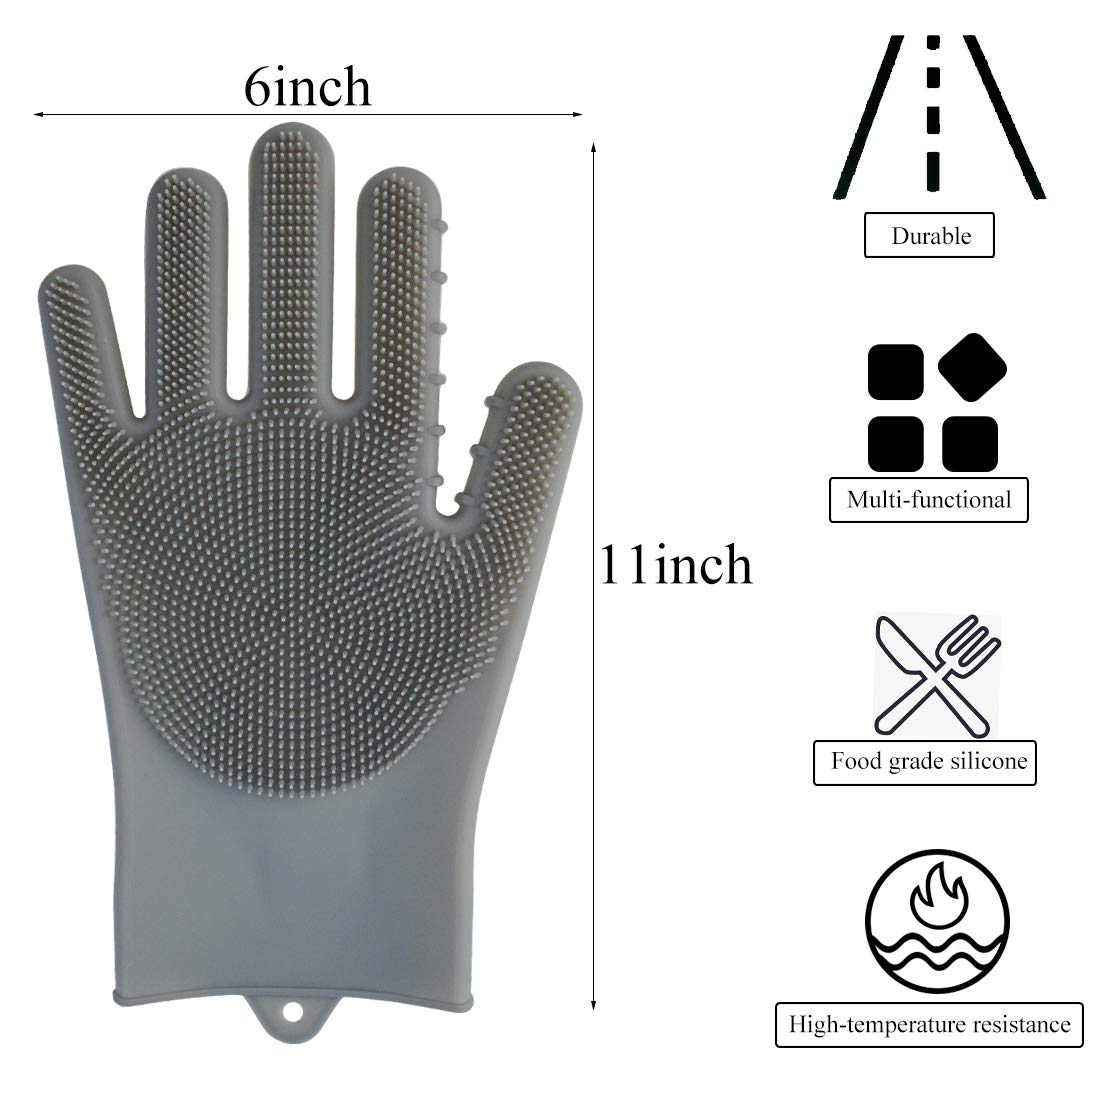 Poualss Dishwashing Gloves,2 Pair Magic Silicone Dishwashing Gloves with Brush Scrubber Gloves for Kitchen Bathroom Cleaning, Pet Hair Care, Car Washing